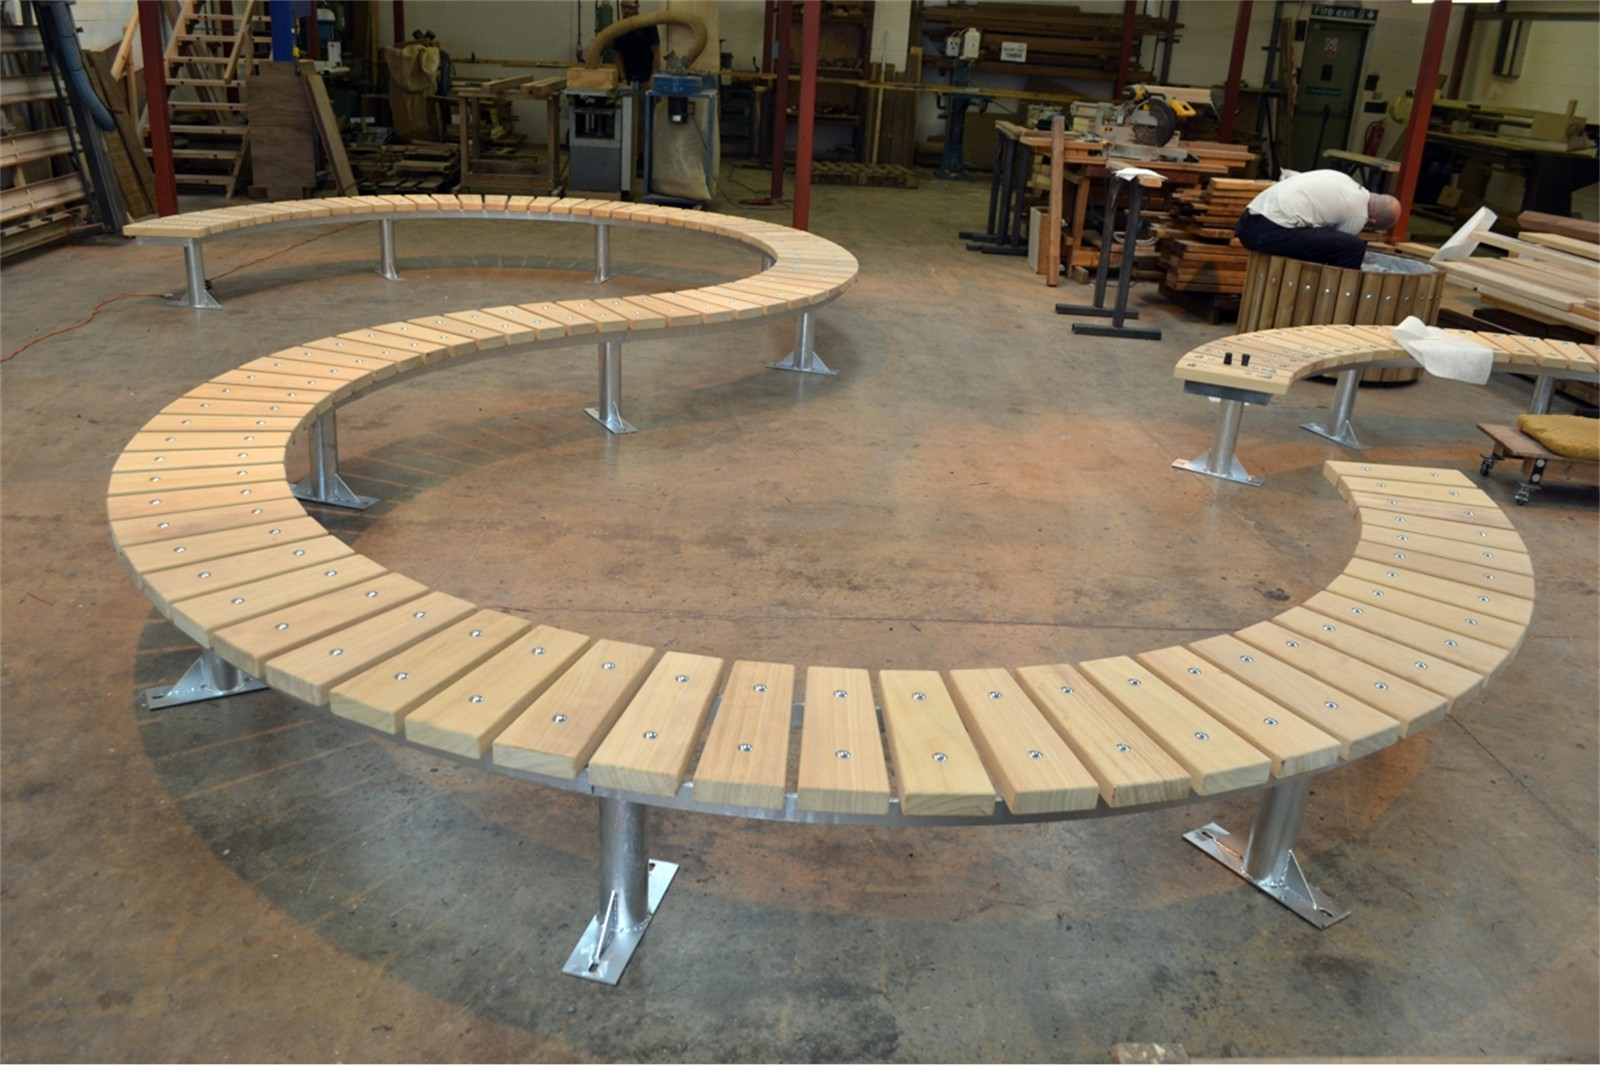 75ssp11 - Spalding large s-shaped curved bench